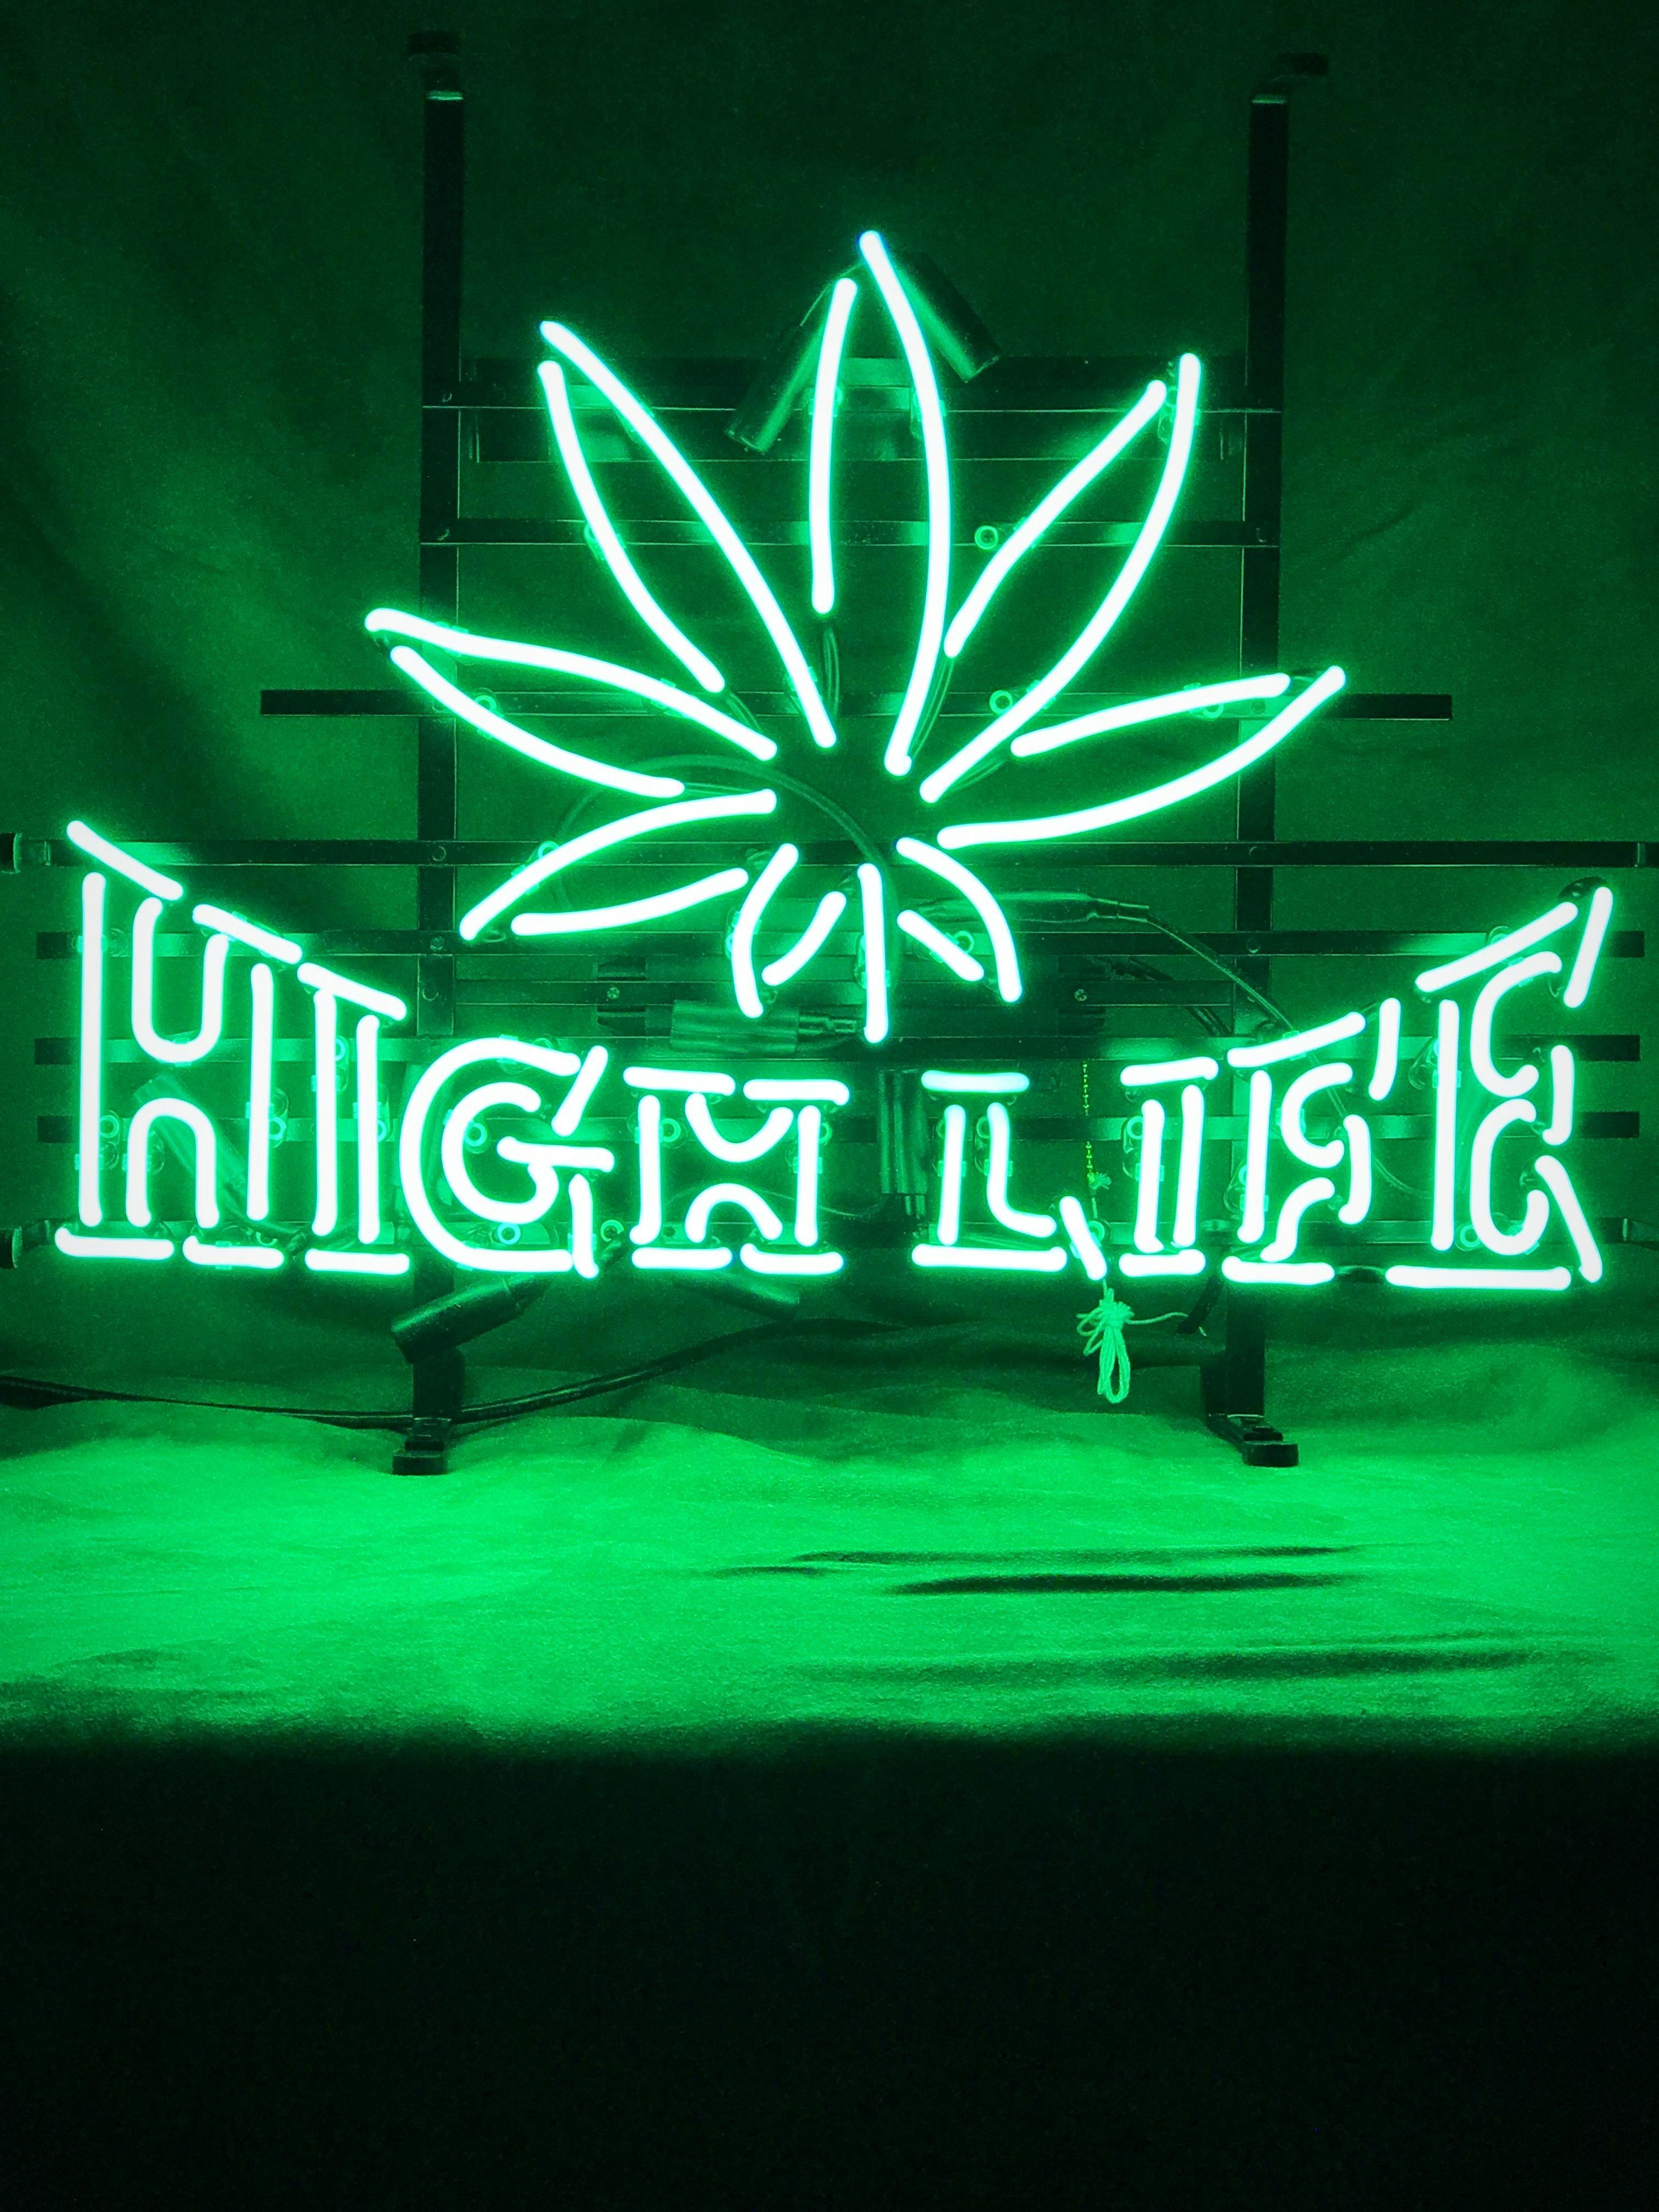 High Life Neon Sign Neon Signs Dark Green Aesthetic Green Aesthetic